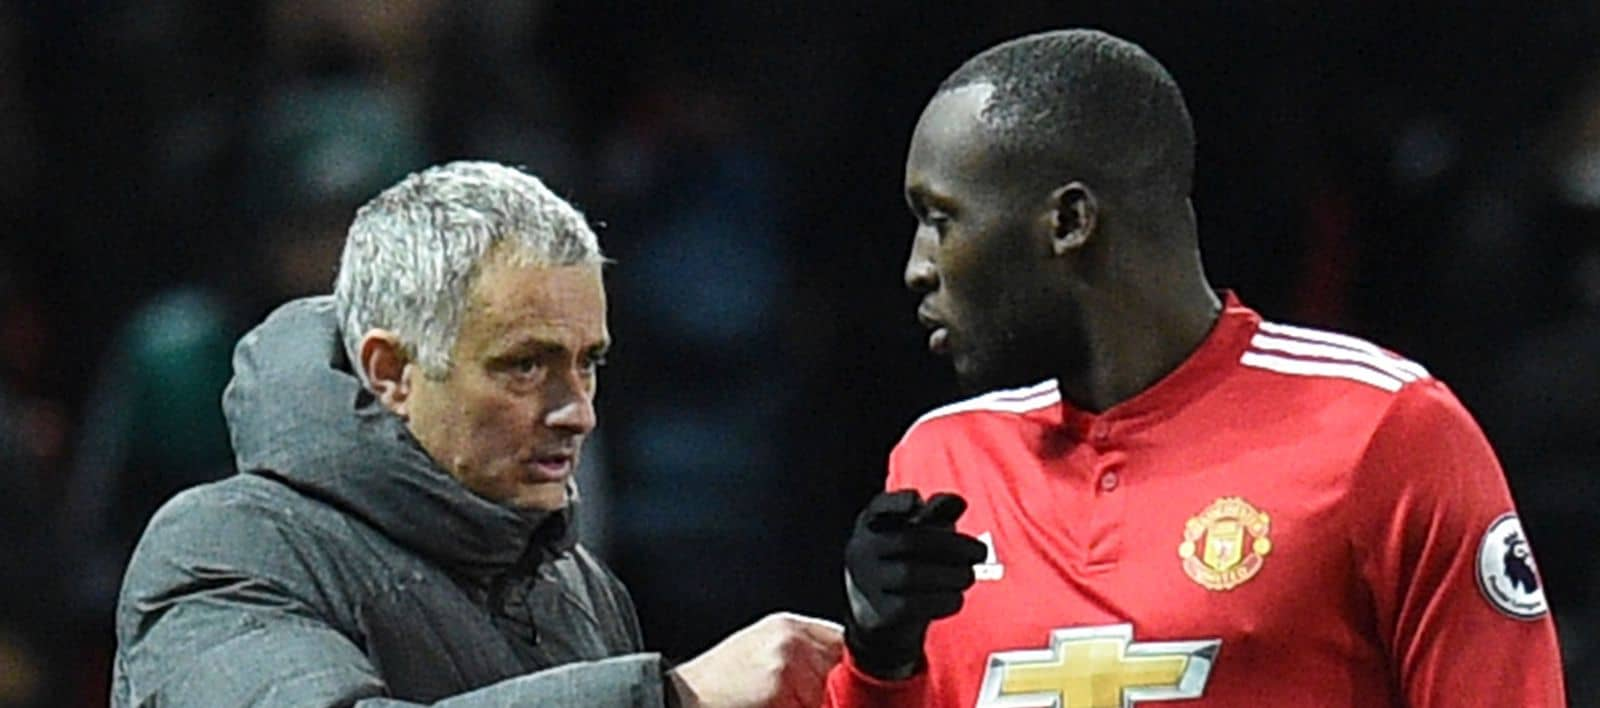 Romelu Lukaku hails Jose Mourinho for not faking his emotions as Manchester United manager